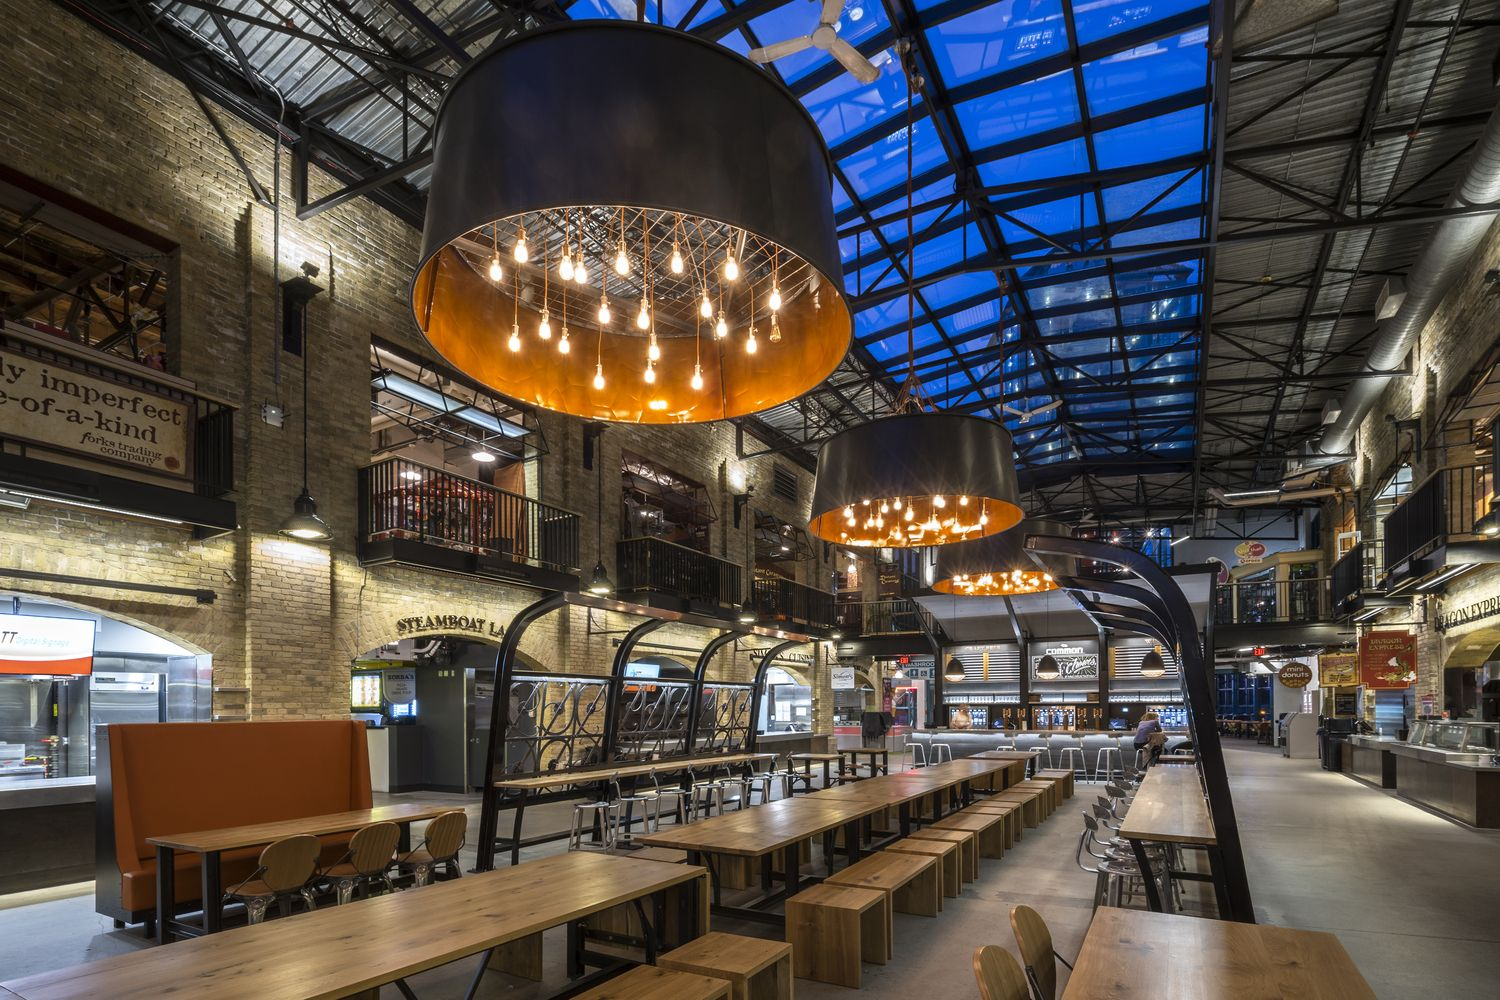 Sofa Cafe Faria Lima Gallery Of The Forks Market Food Hall Number Ten Architectural